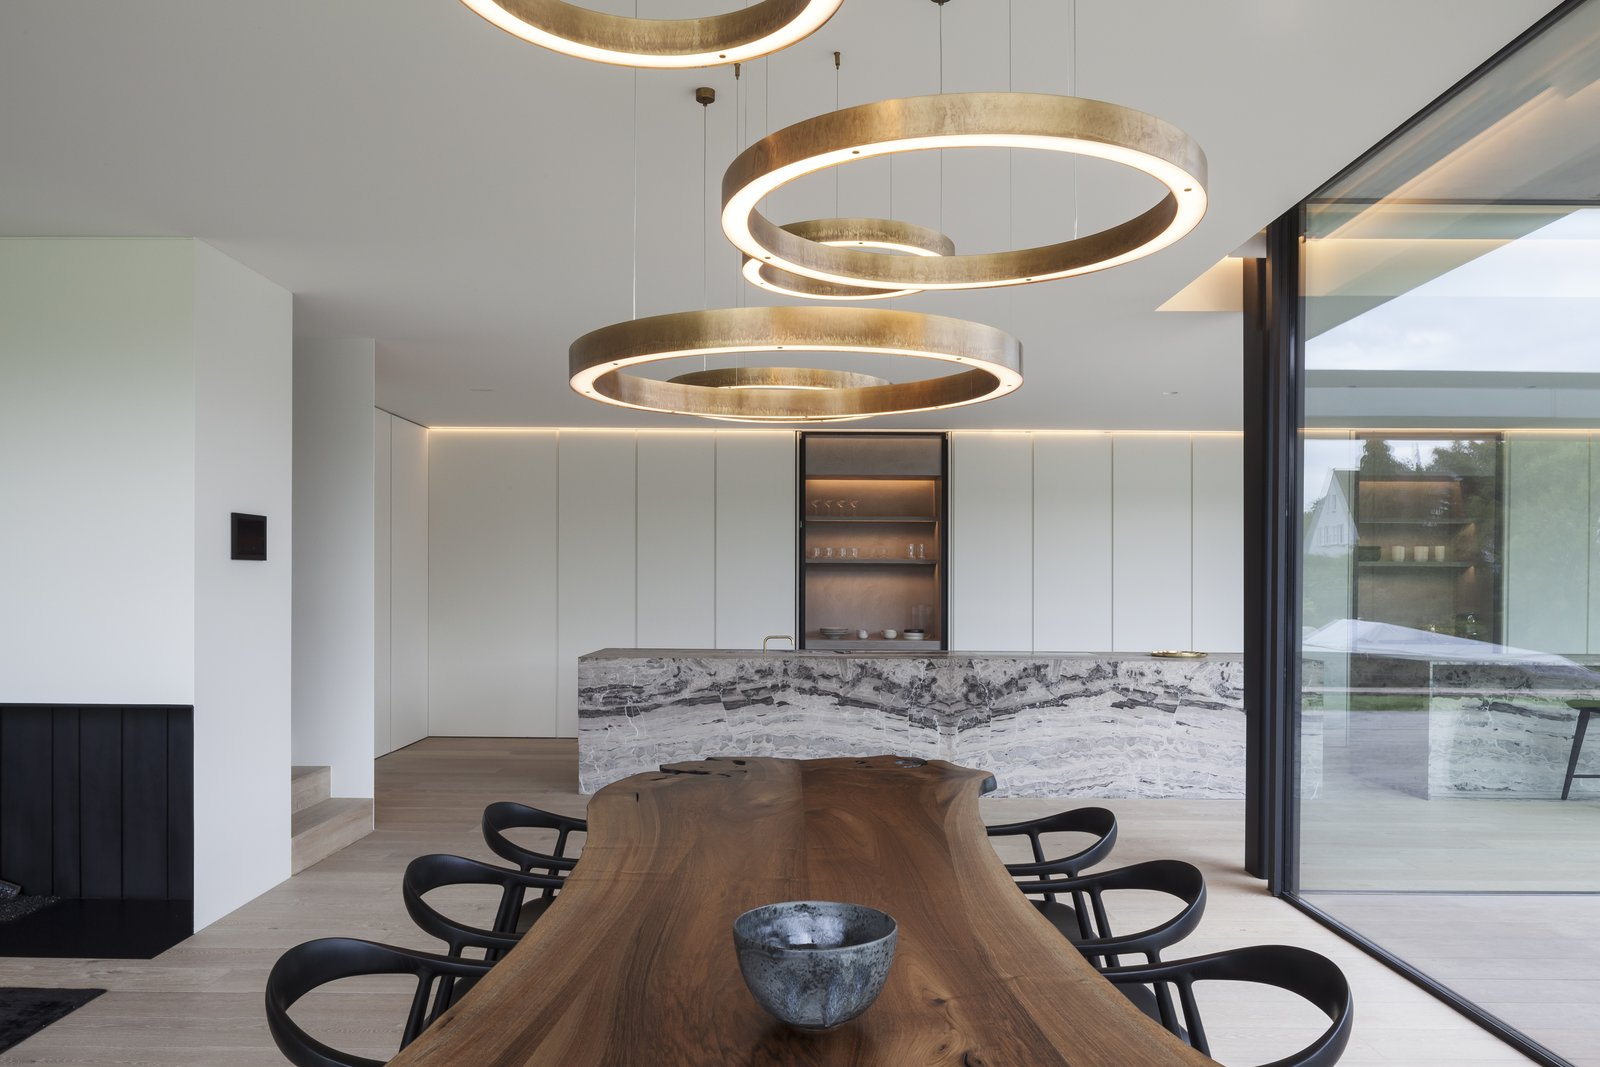 Dining Room, Table, Chair, Light Hardwood Floor, and Pendant Lighting  Photo 9 of 11 in 10 Minimalist and Monochromatic Homes in Belgium from Foxtail Bachelor Pad